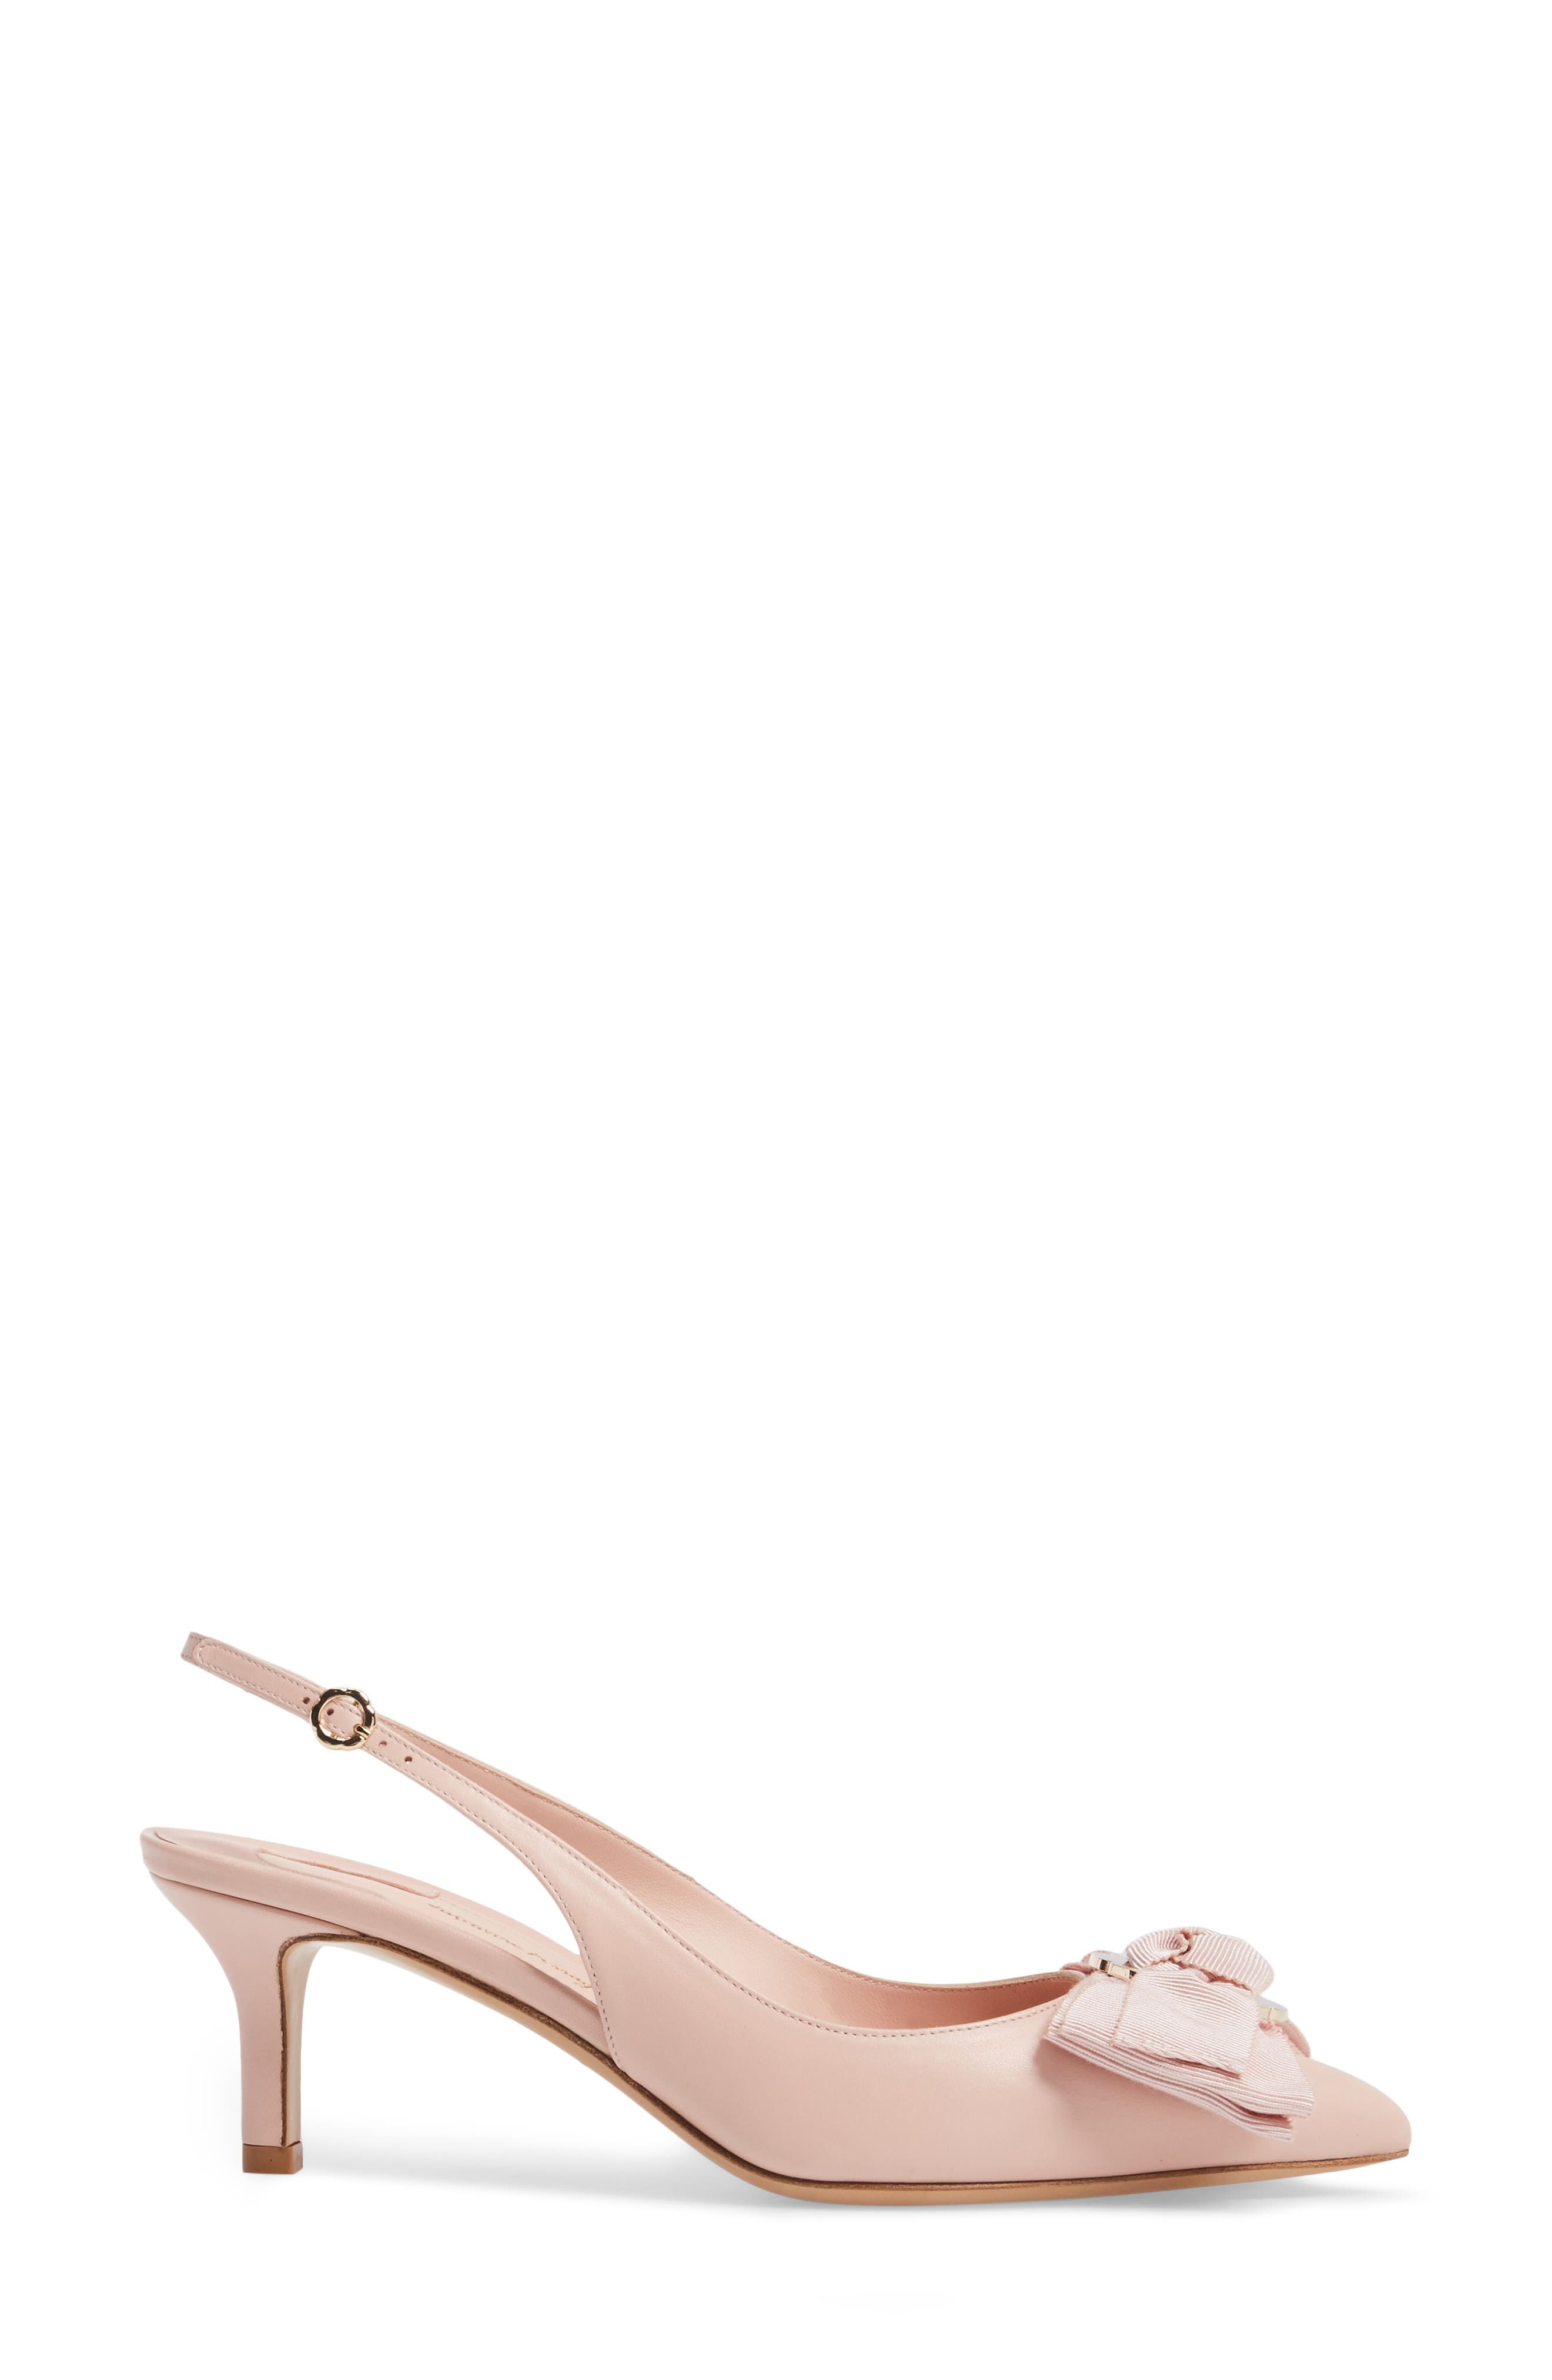 Laterina Slingback Pump,                             Alternate thumbnail 3, color,